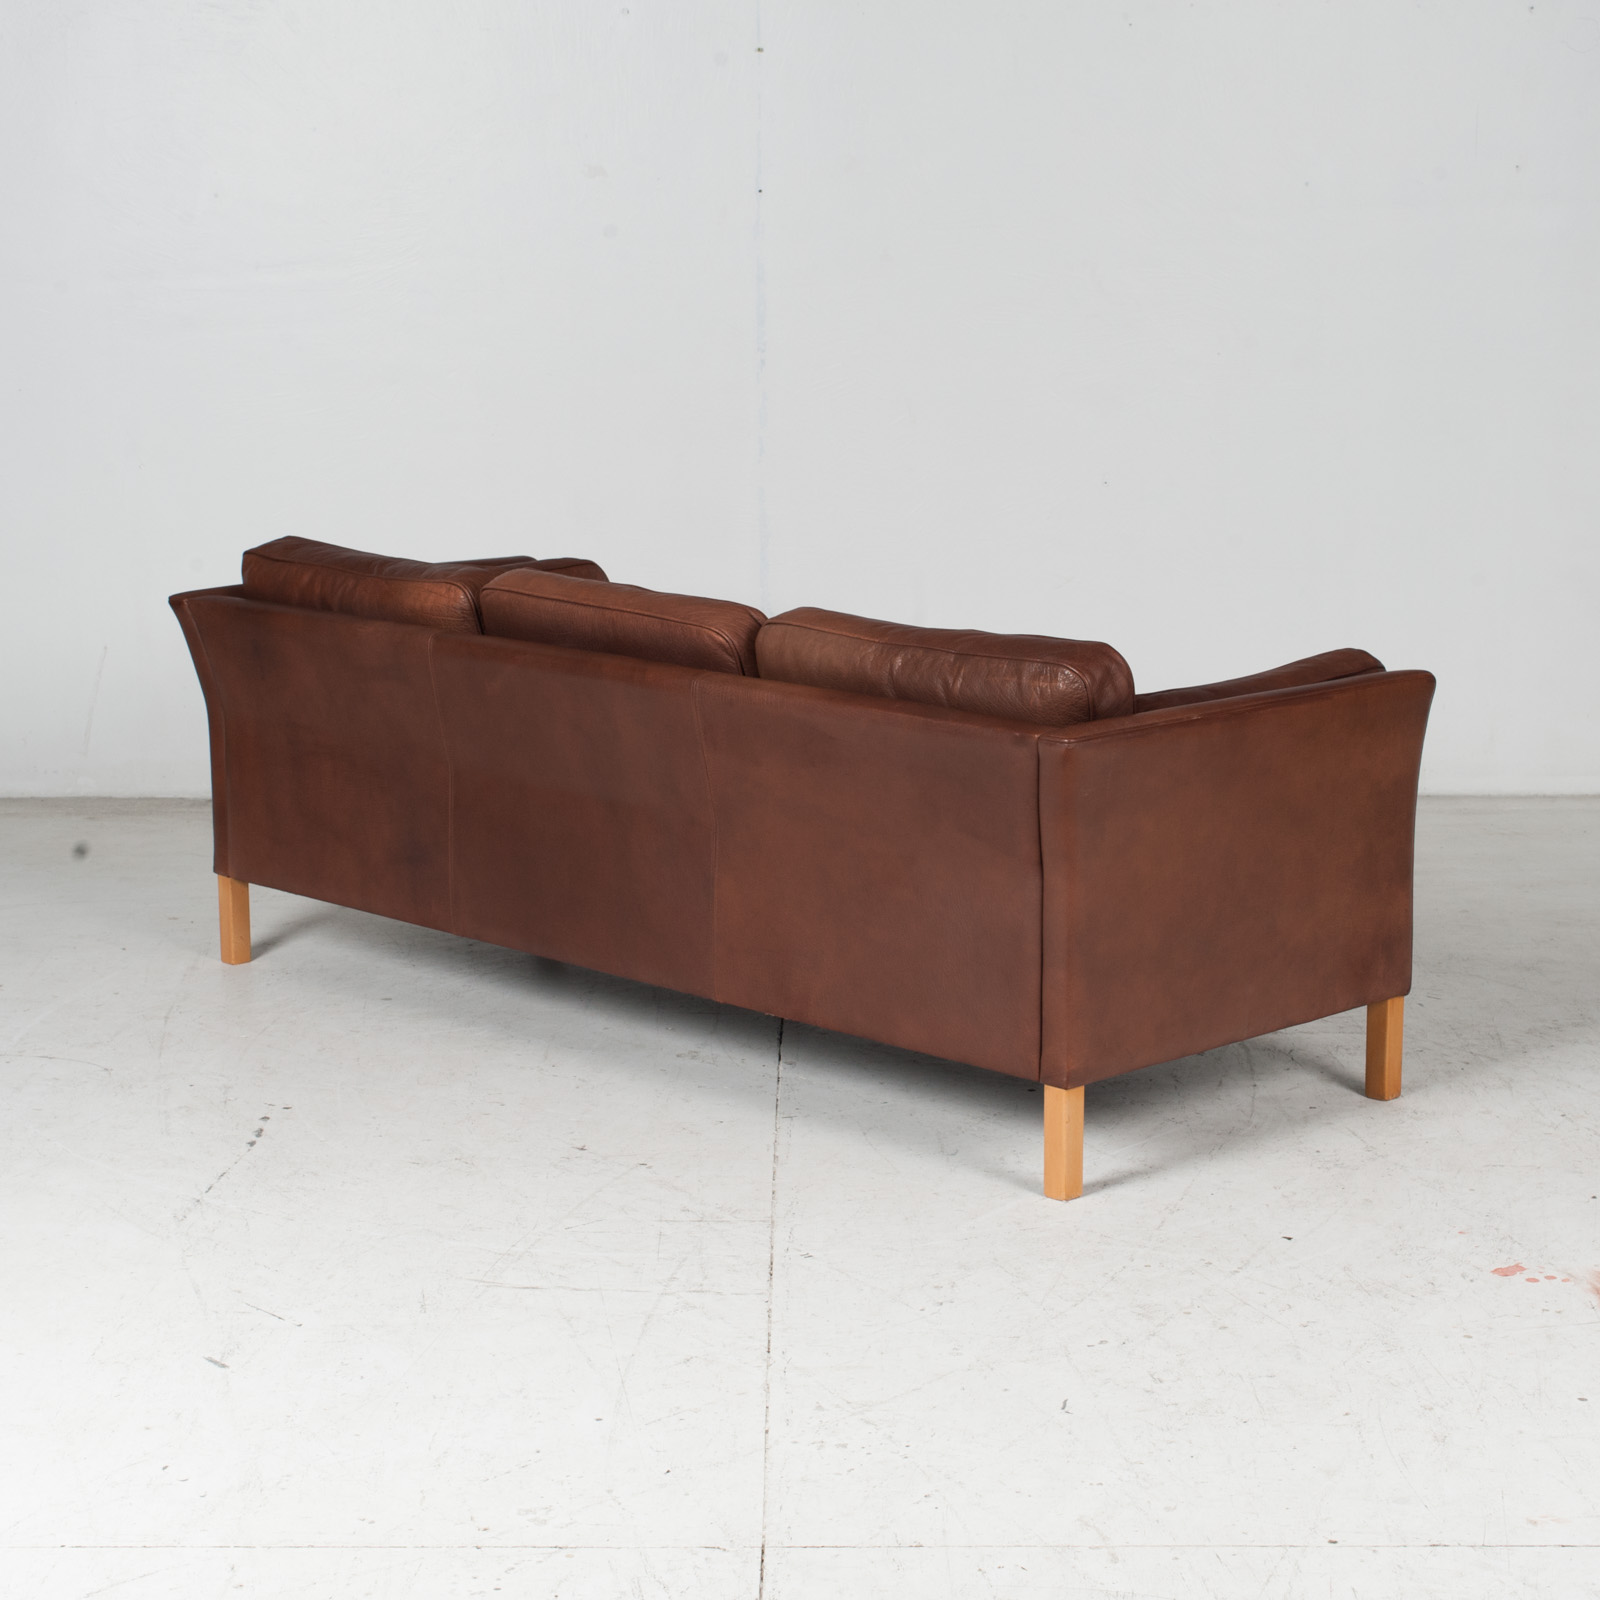 3 Seat Sofa In Brown Leather With Beech Legs, 1960s, Denmark 7